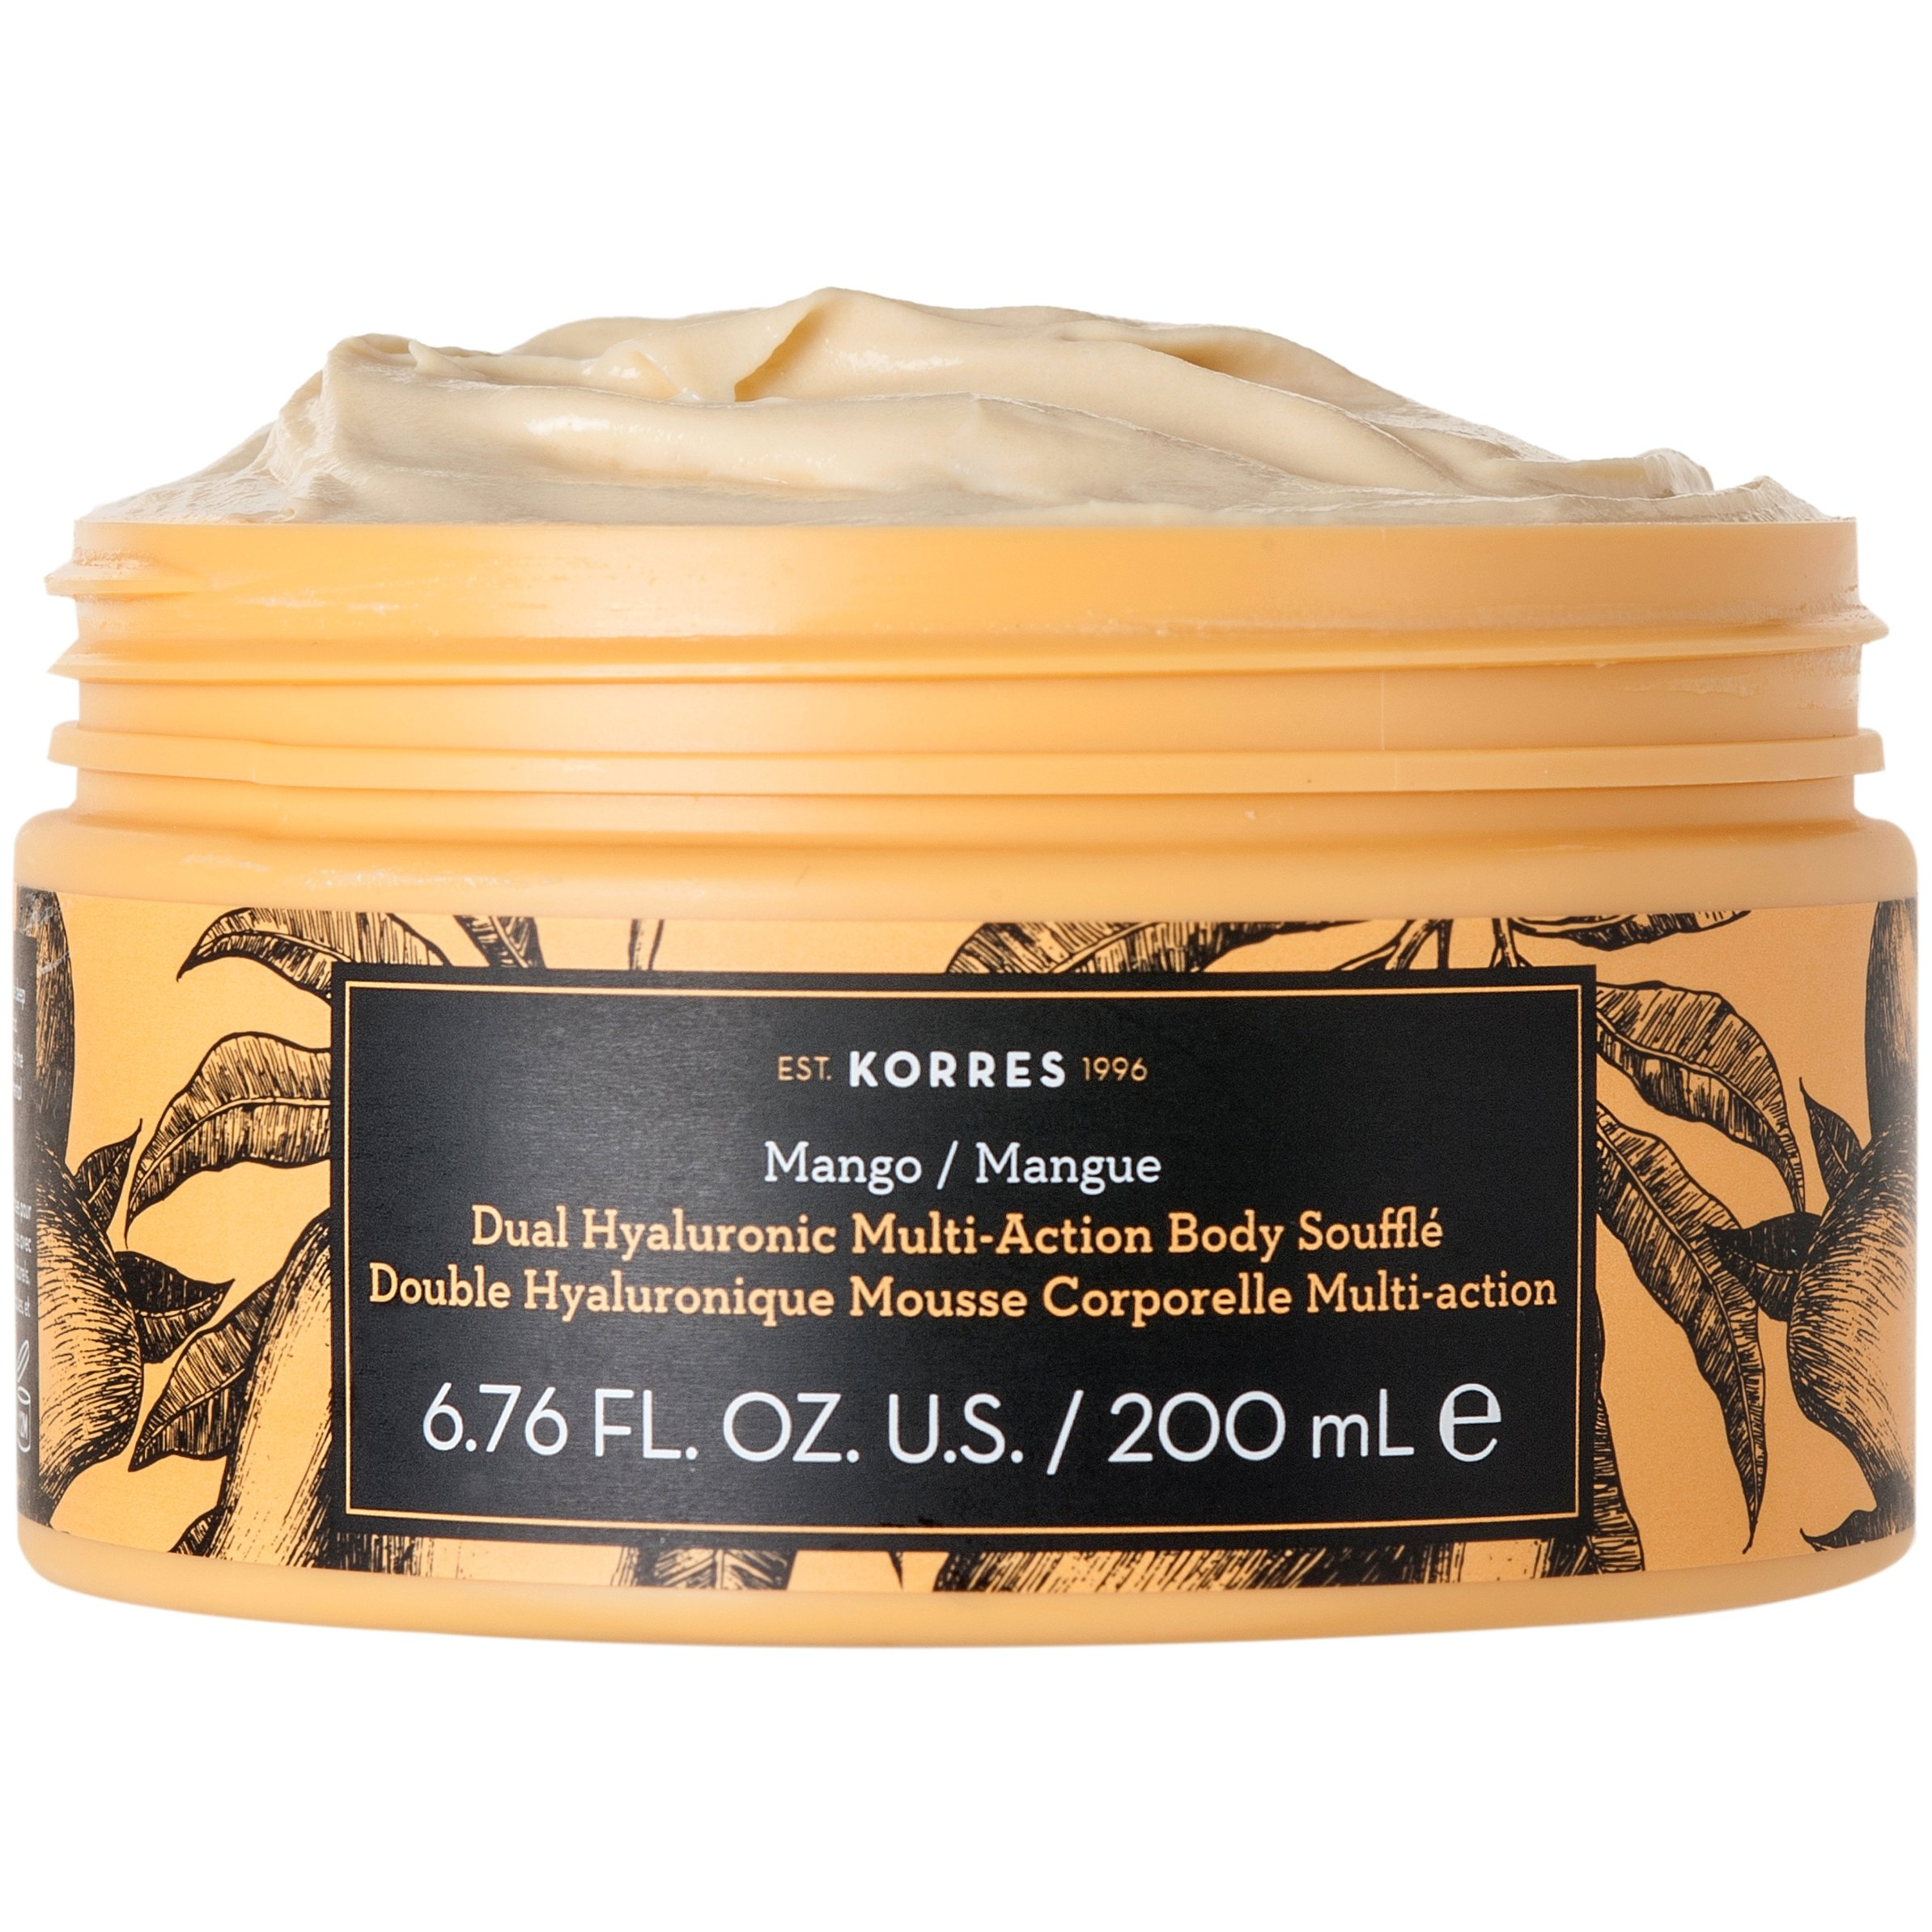 Korres Dual Hyaluronic Multi Action Body Souffle με Διπλό Υαλουρονικό Άρωμα Mango 200mL